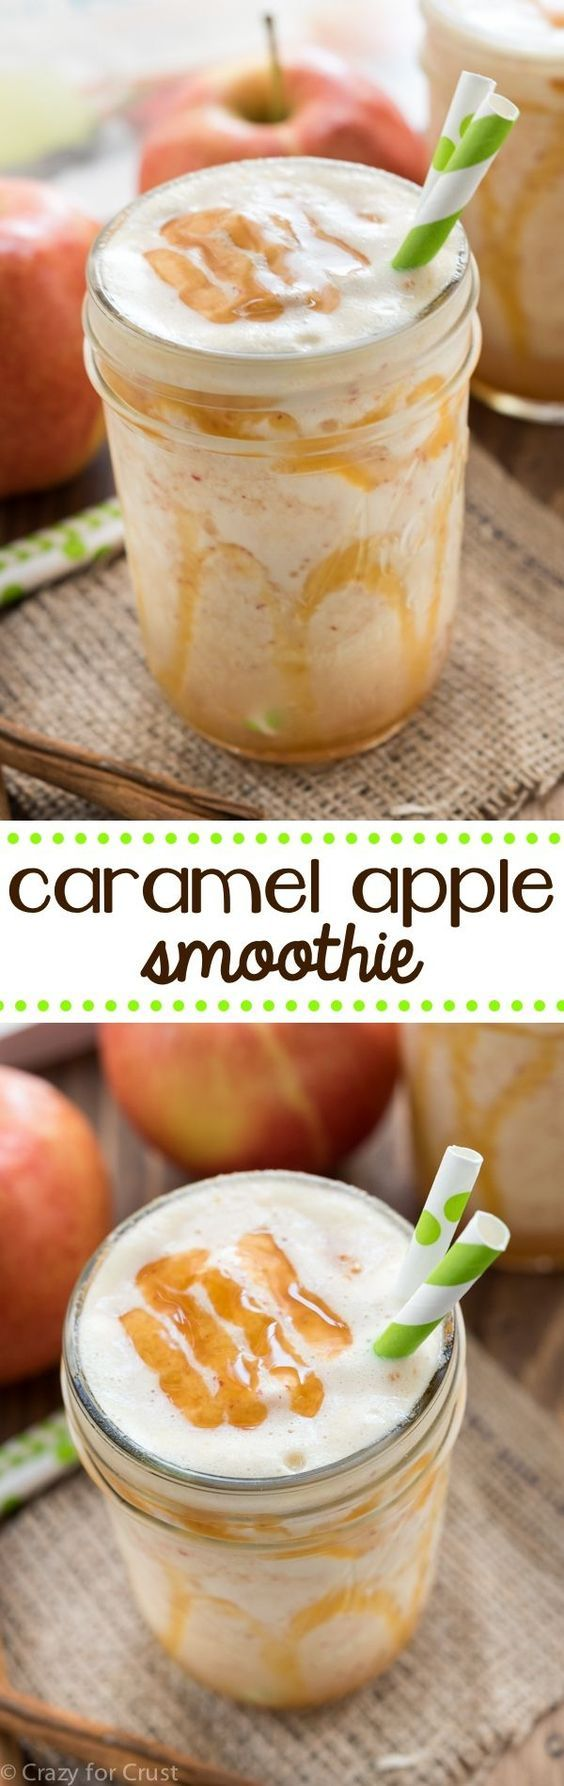 Caramel Apple Smoothie Recipe - an easy smoothie full of fall flavors. No added…